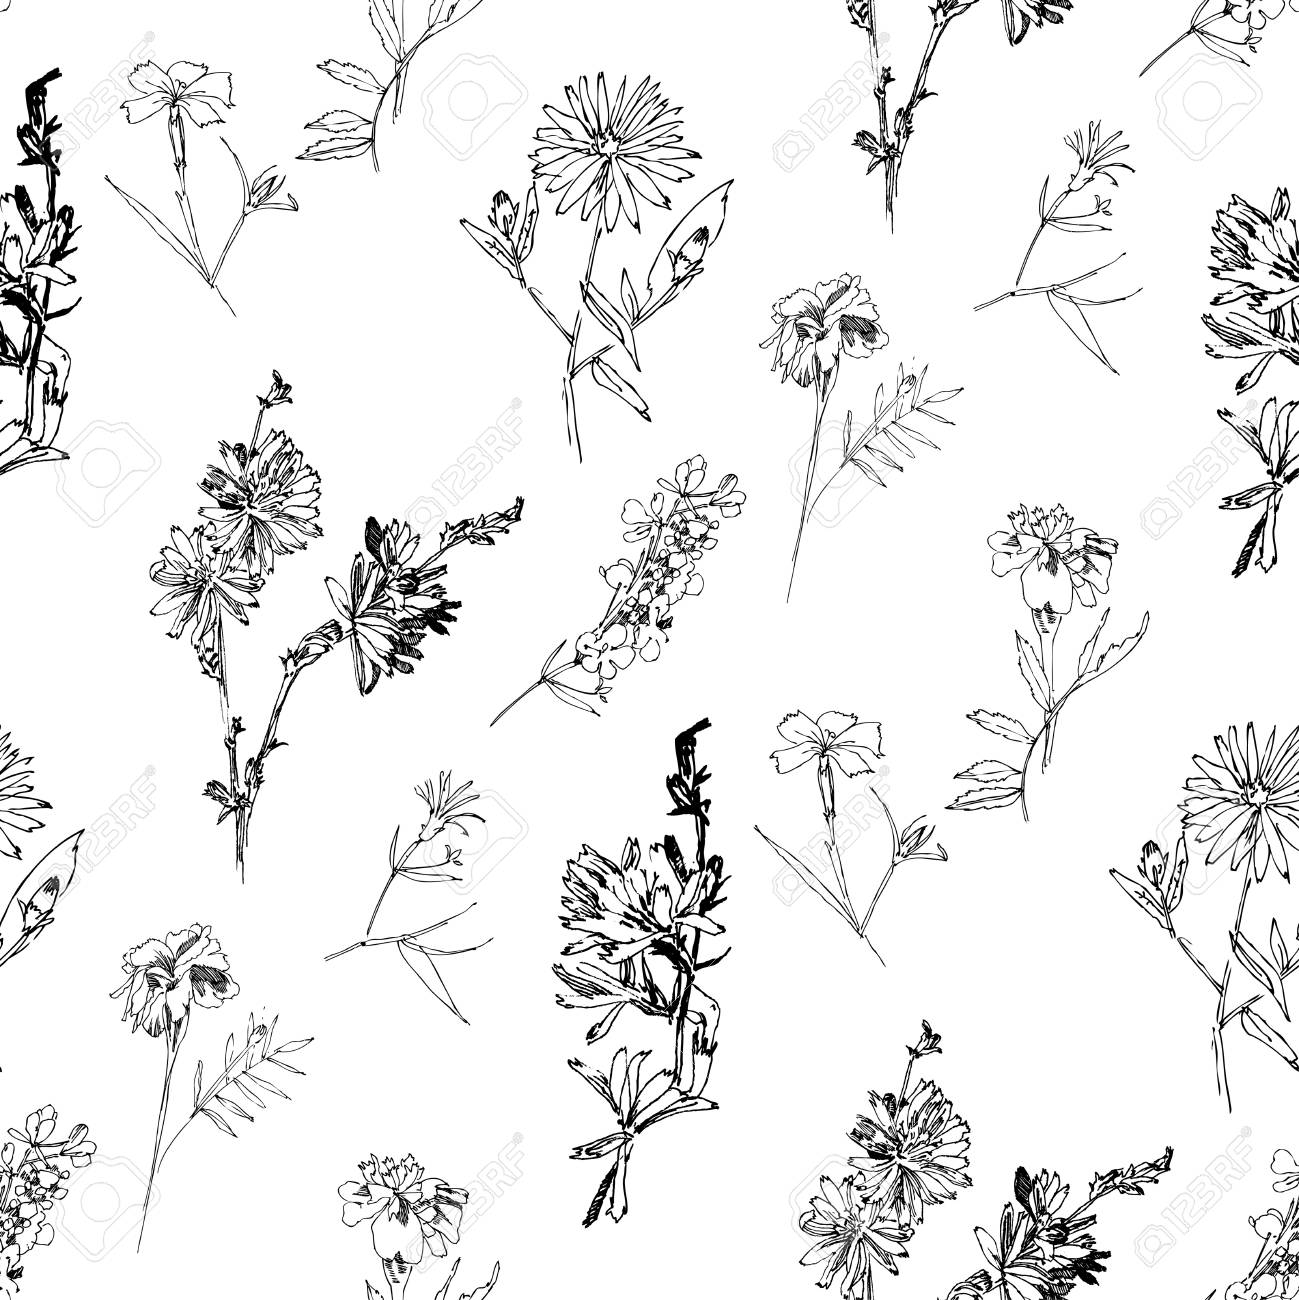 Seamless pattern with Wild Flowers with Summer Botanical Sketches - 123364843